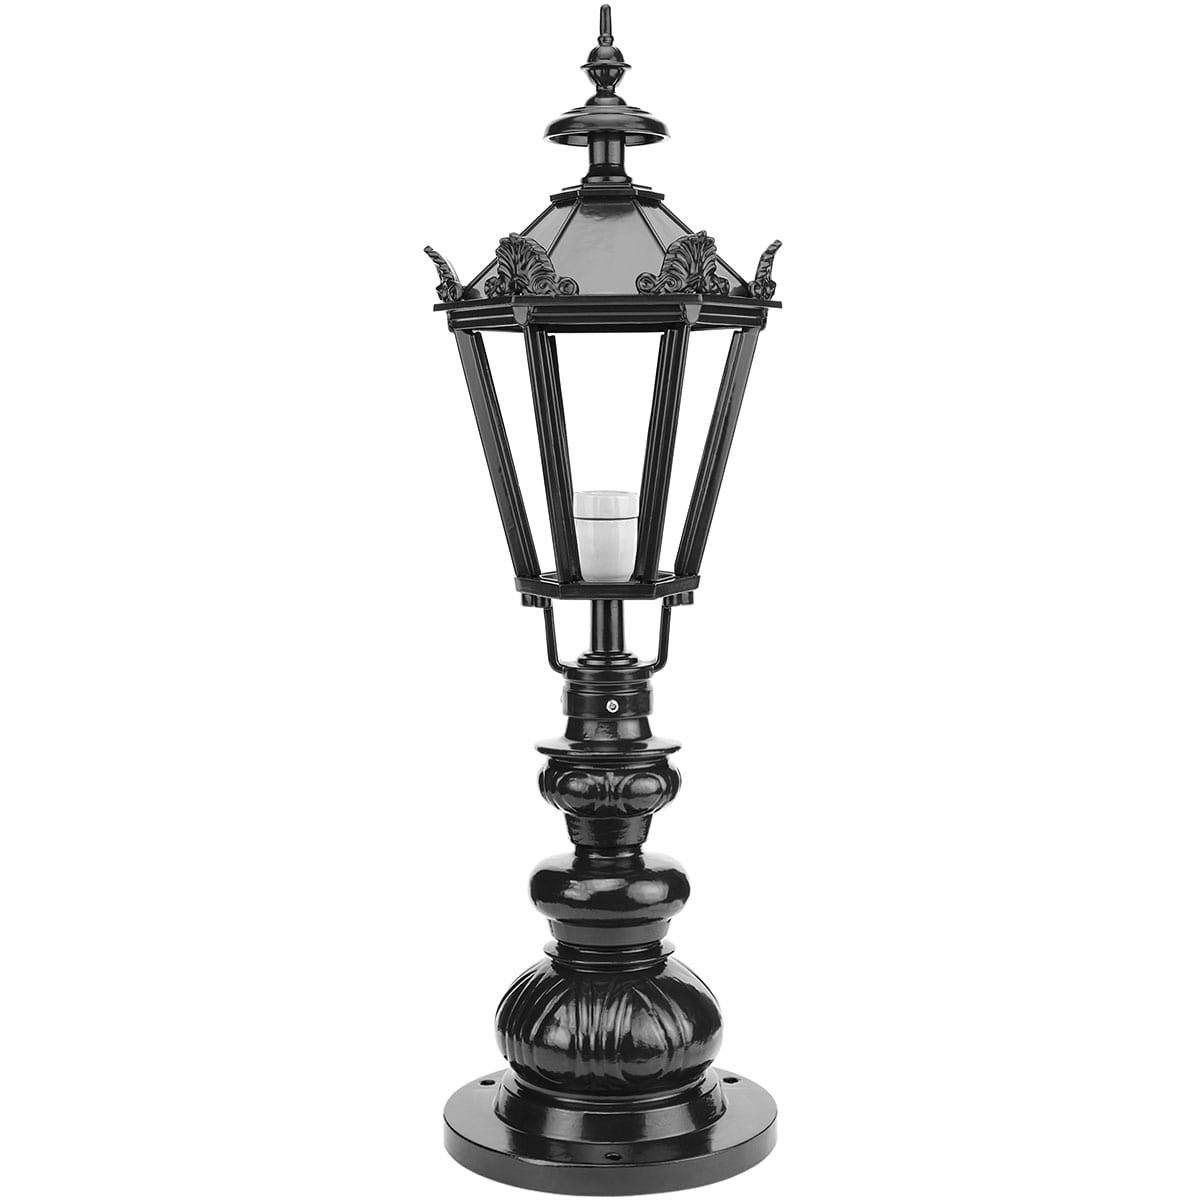 Outdoor Lighting Classic Rural Gate lamp De Hoef with crowns - 83 cm